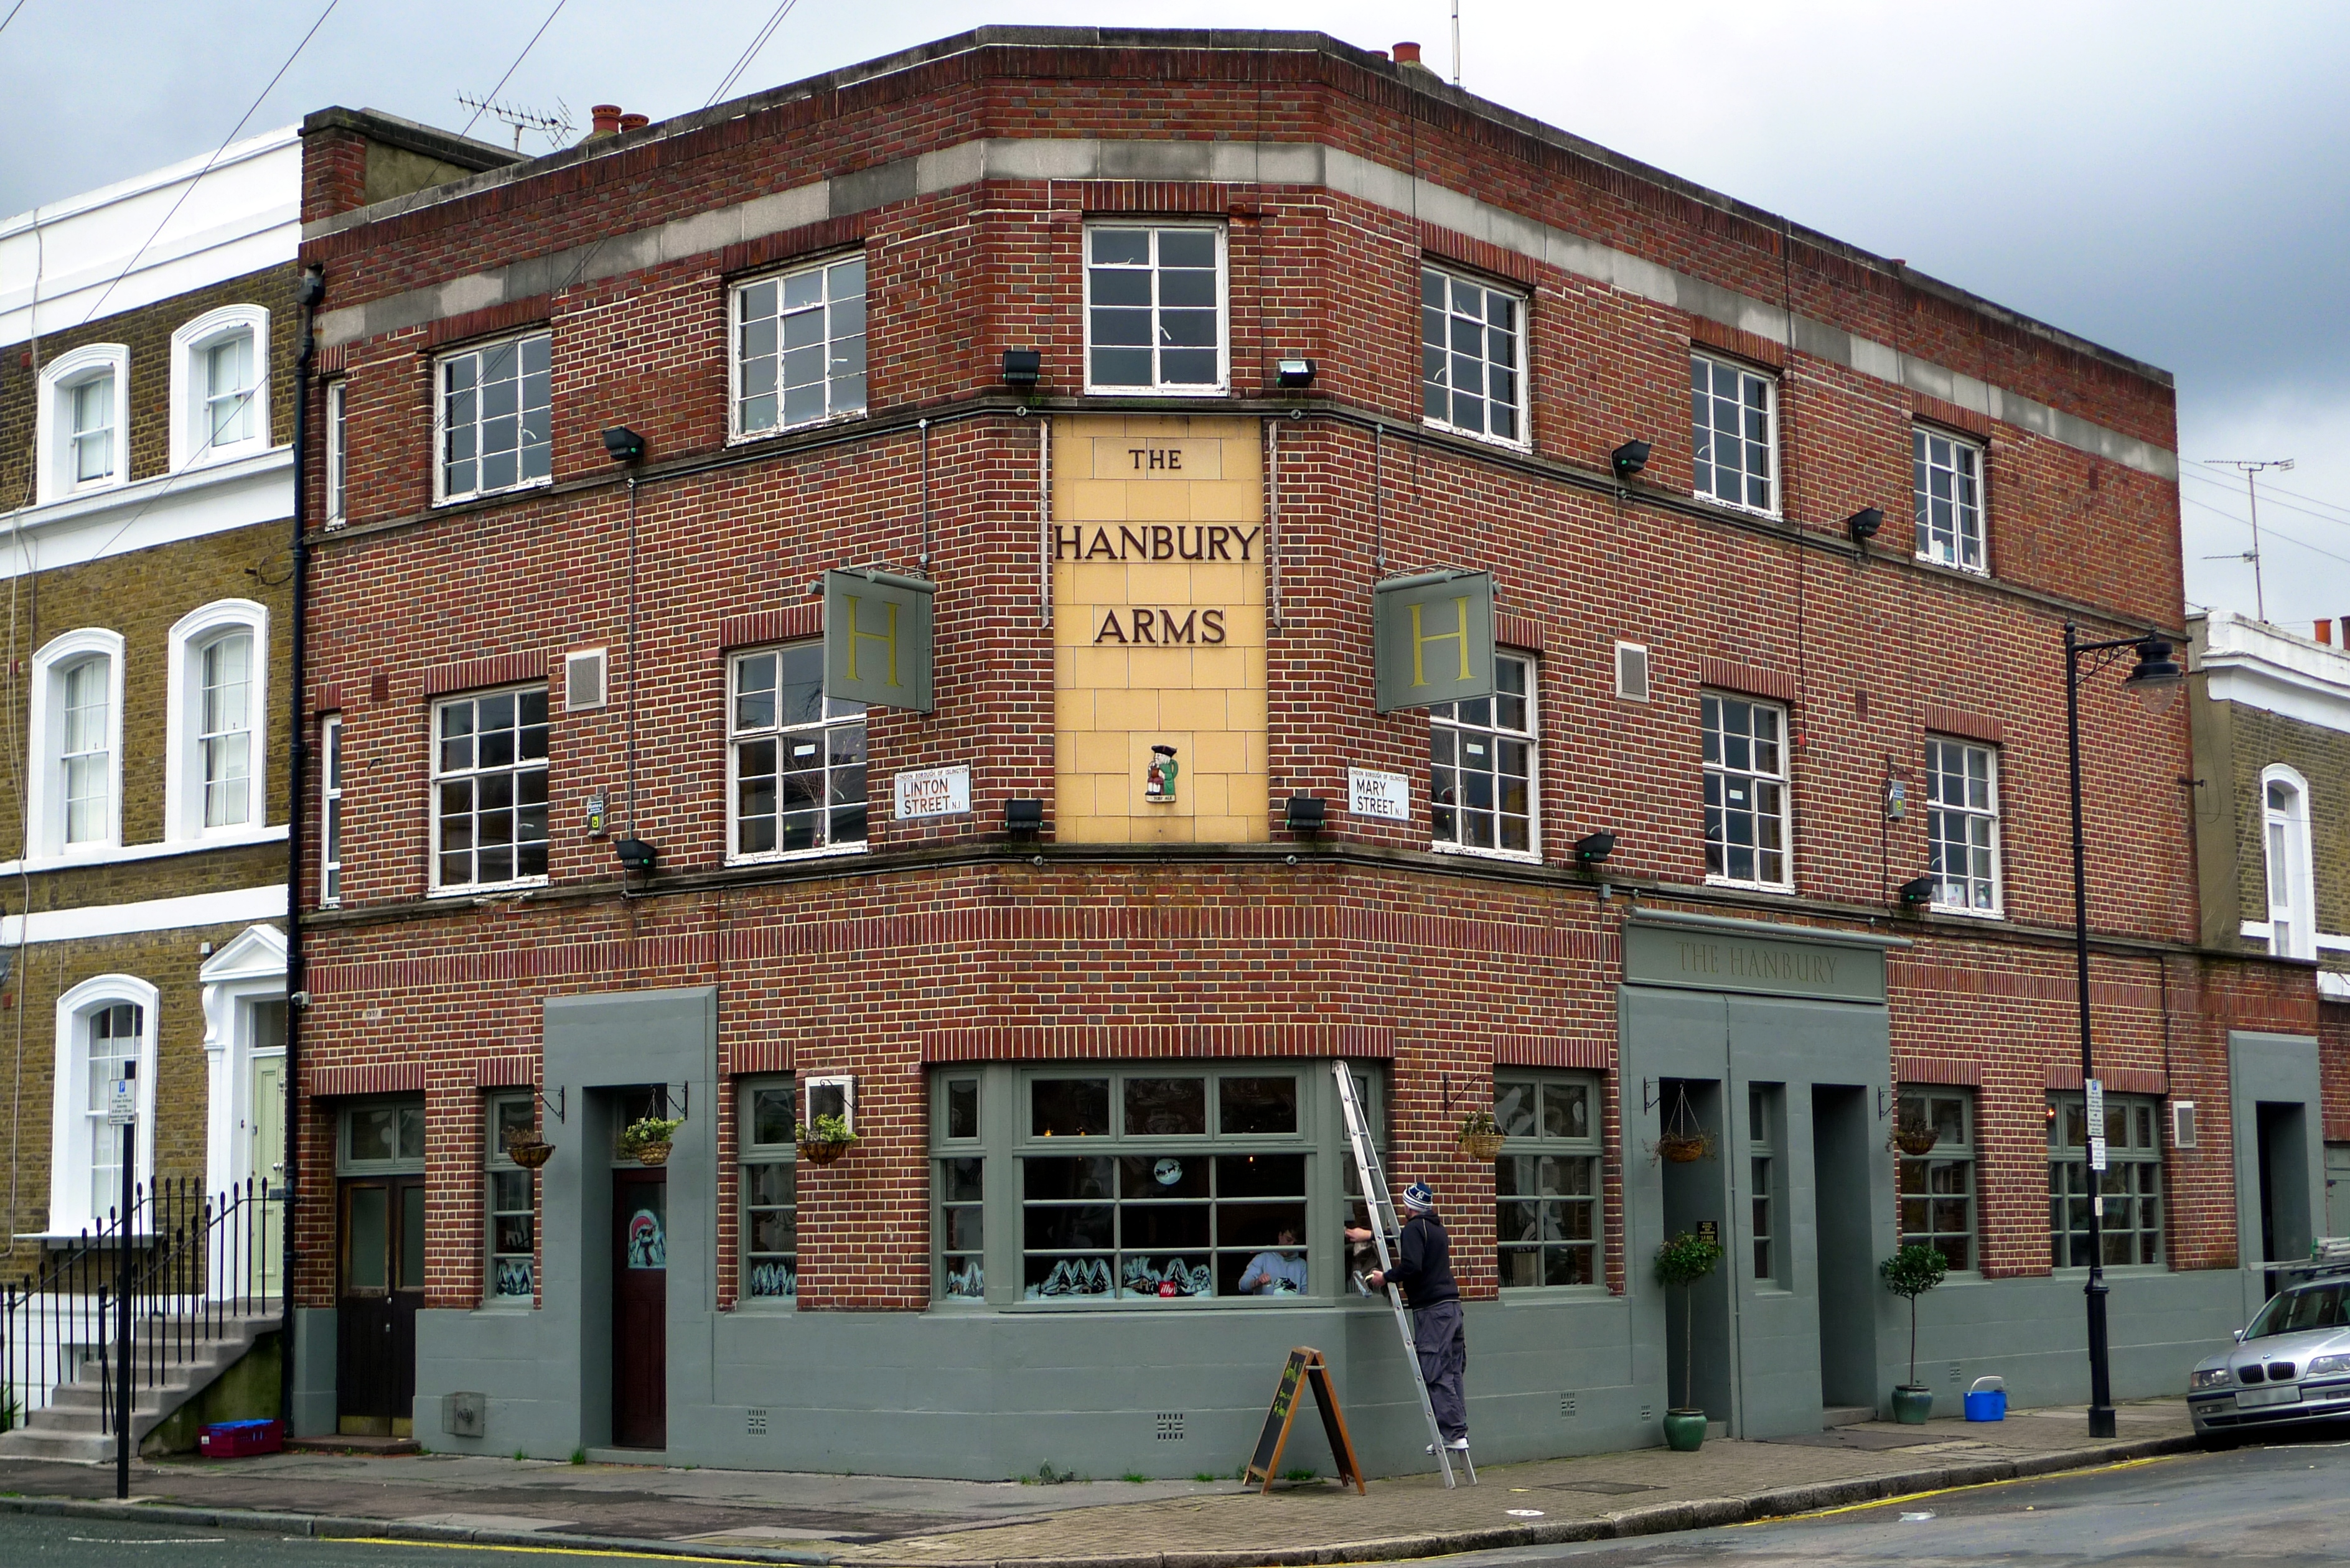 The hanbury arms speed dating